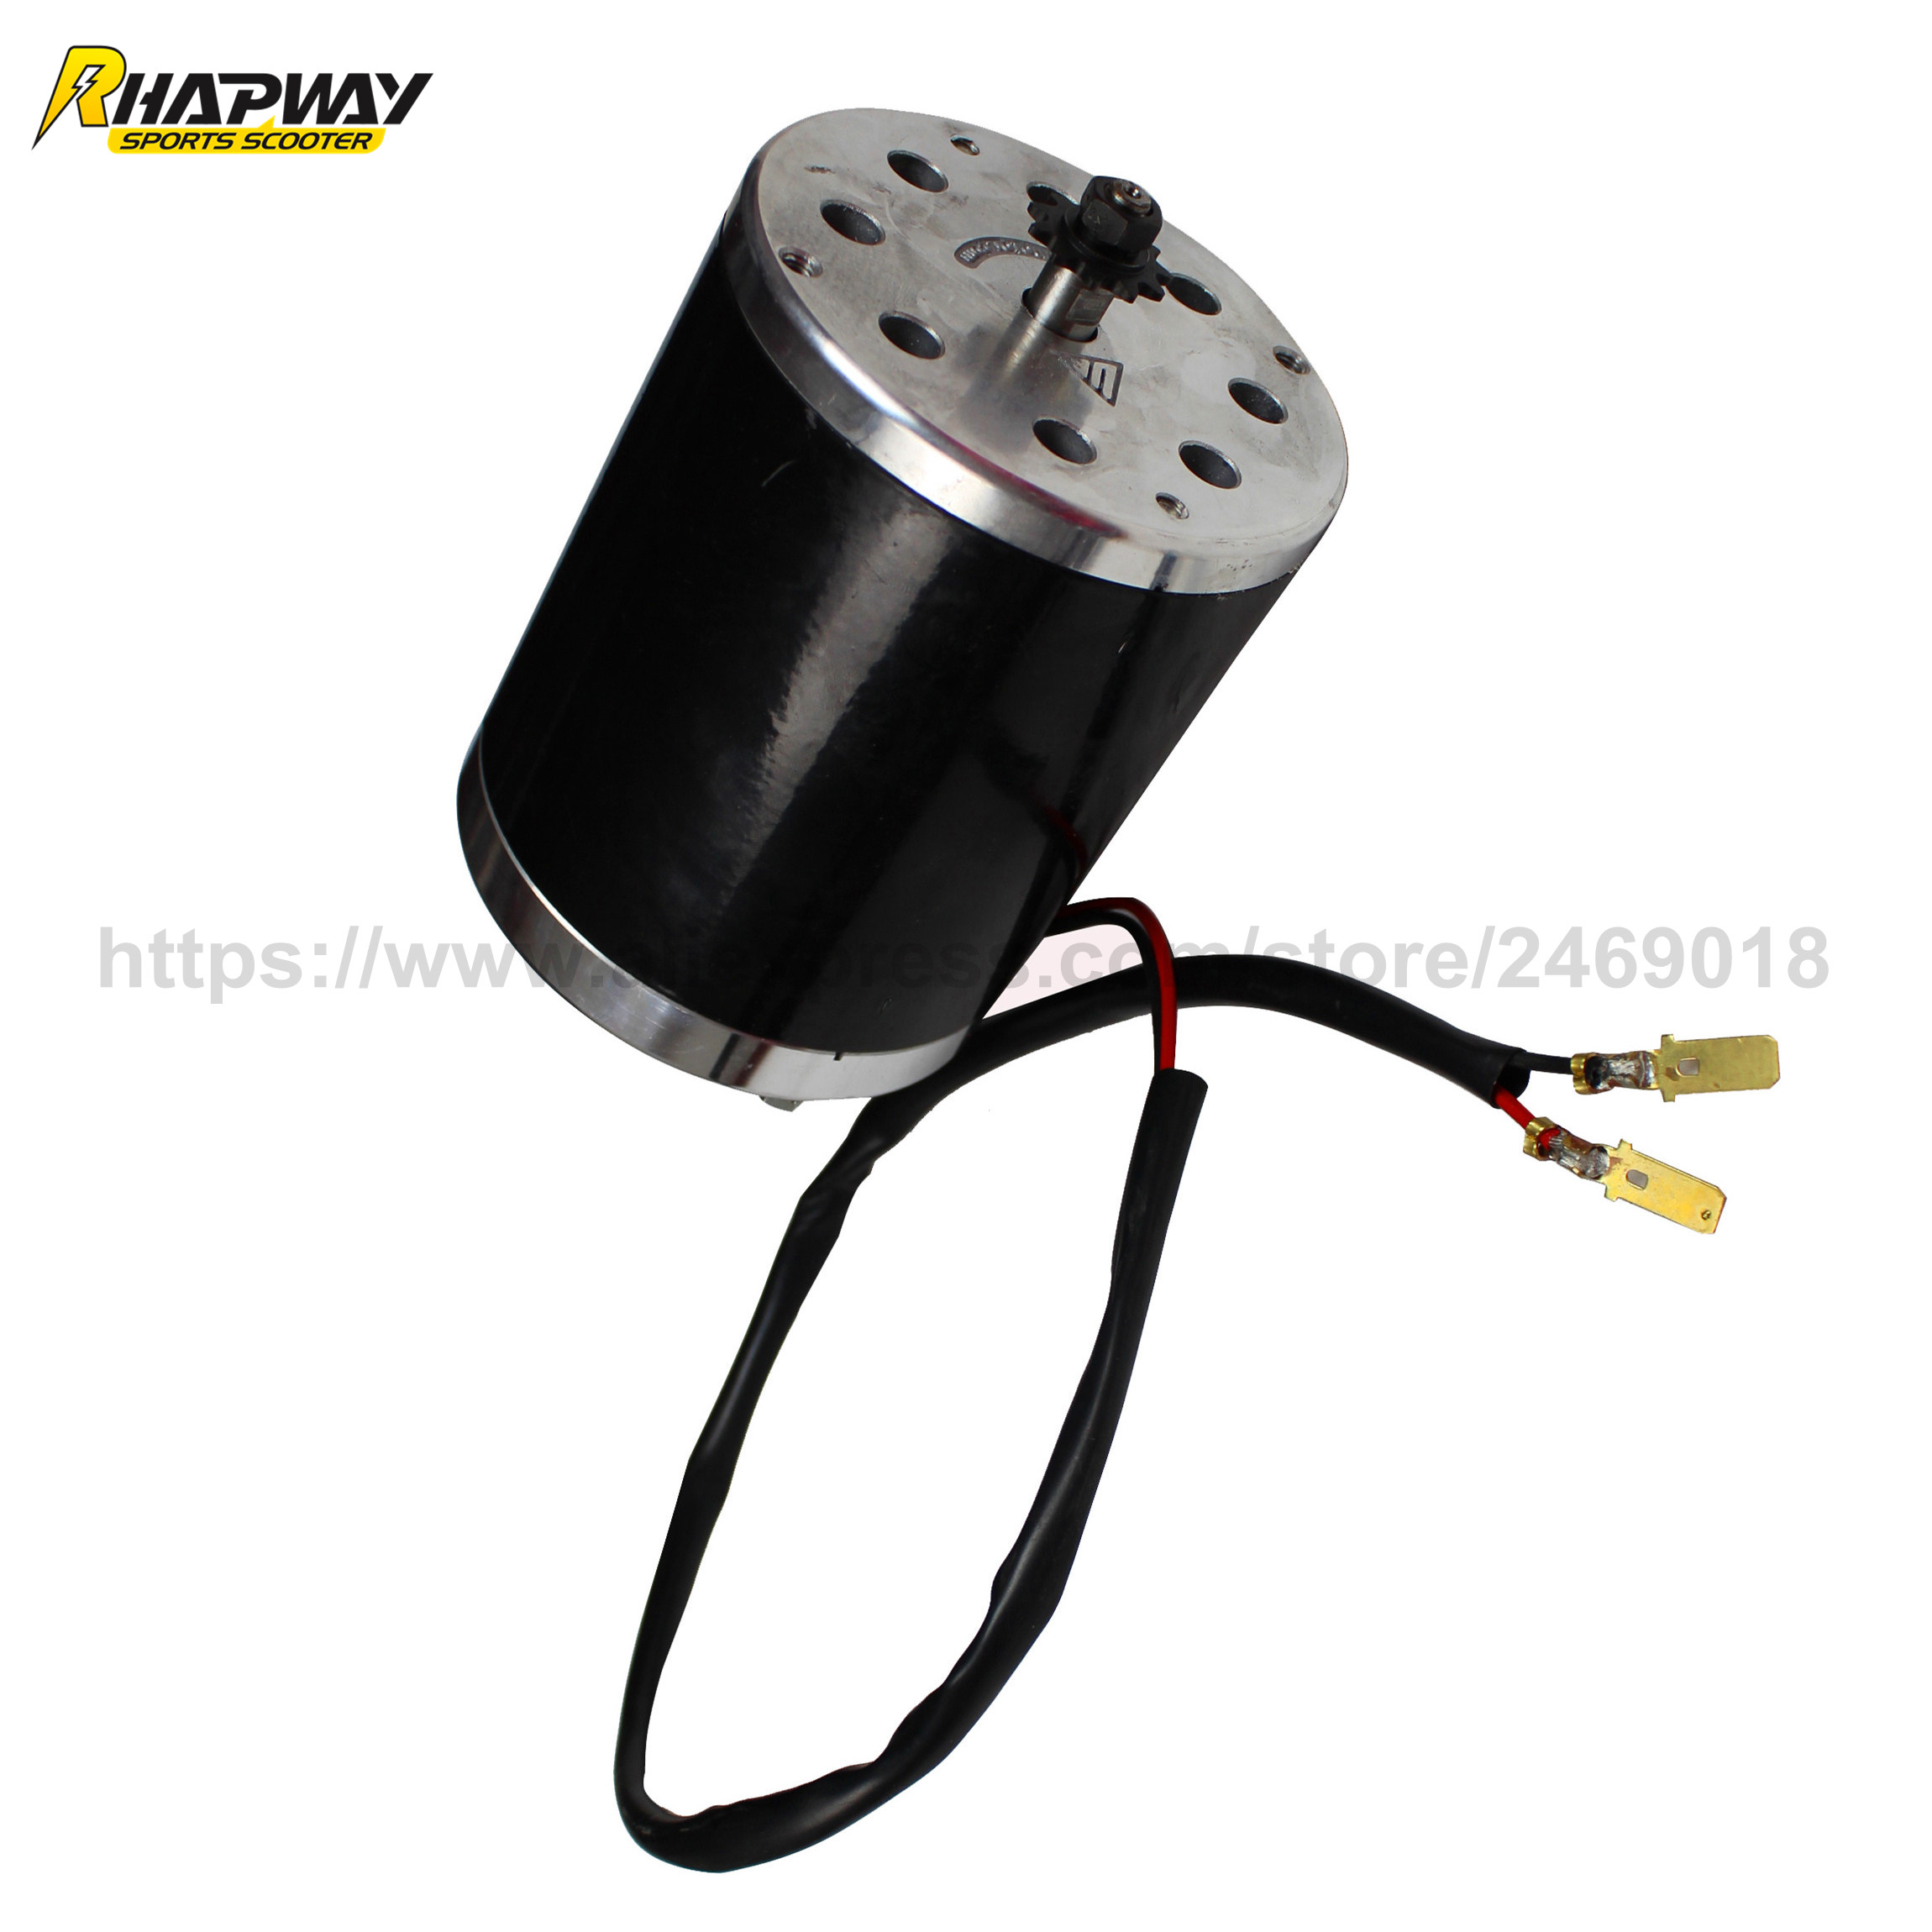 High Quality Electric Scooter Unite Motors 800w 36v